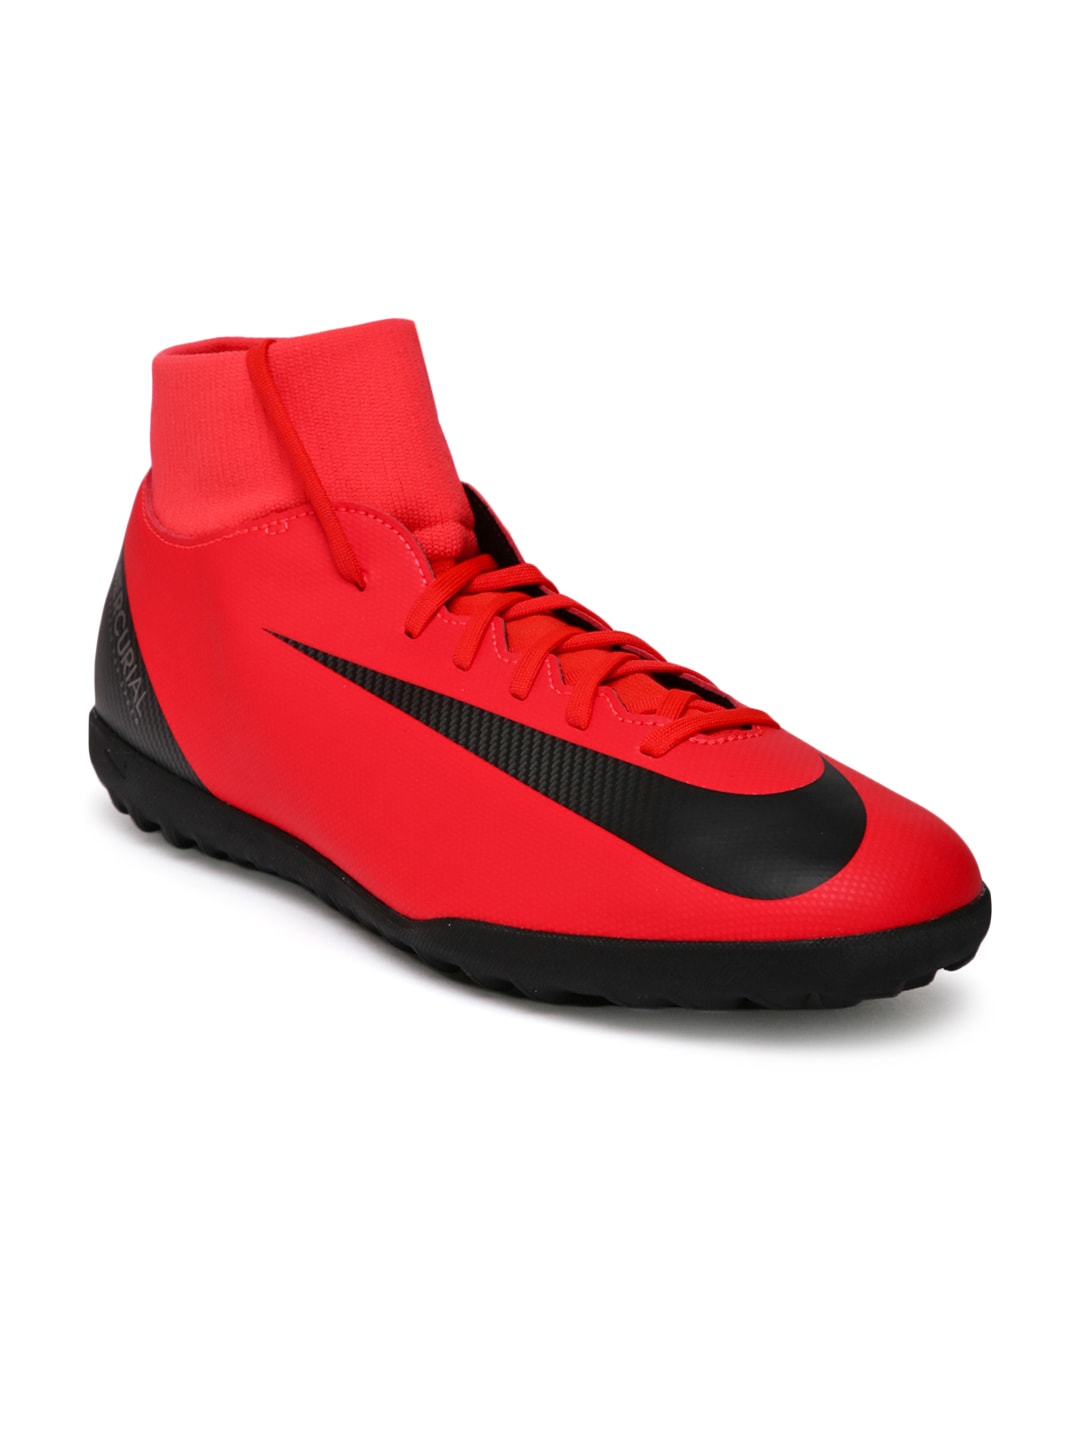 00733b37ee3 Football Shoes - Buy Football Studs Online for Men   Women in India